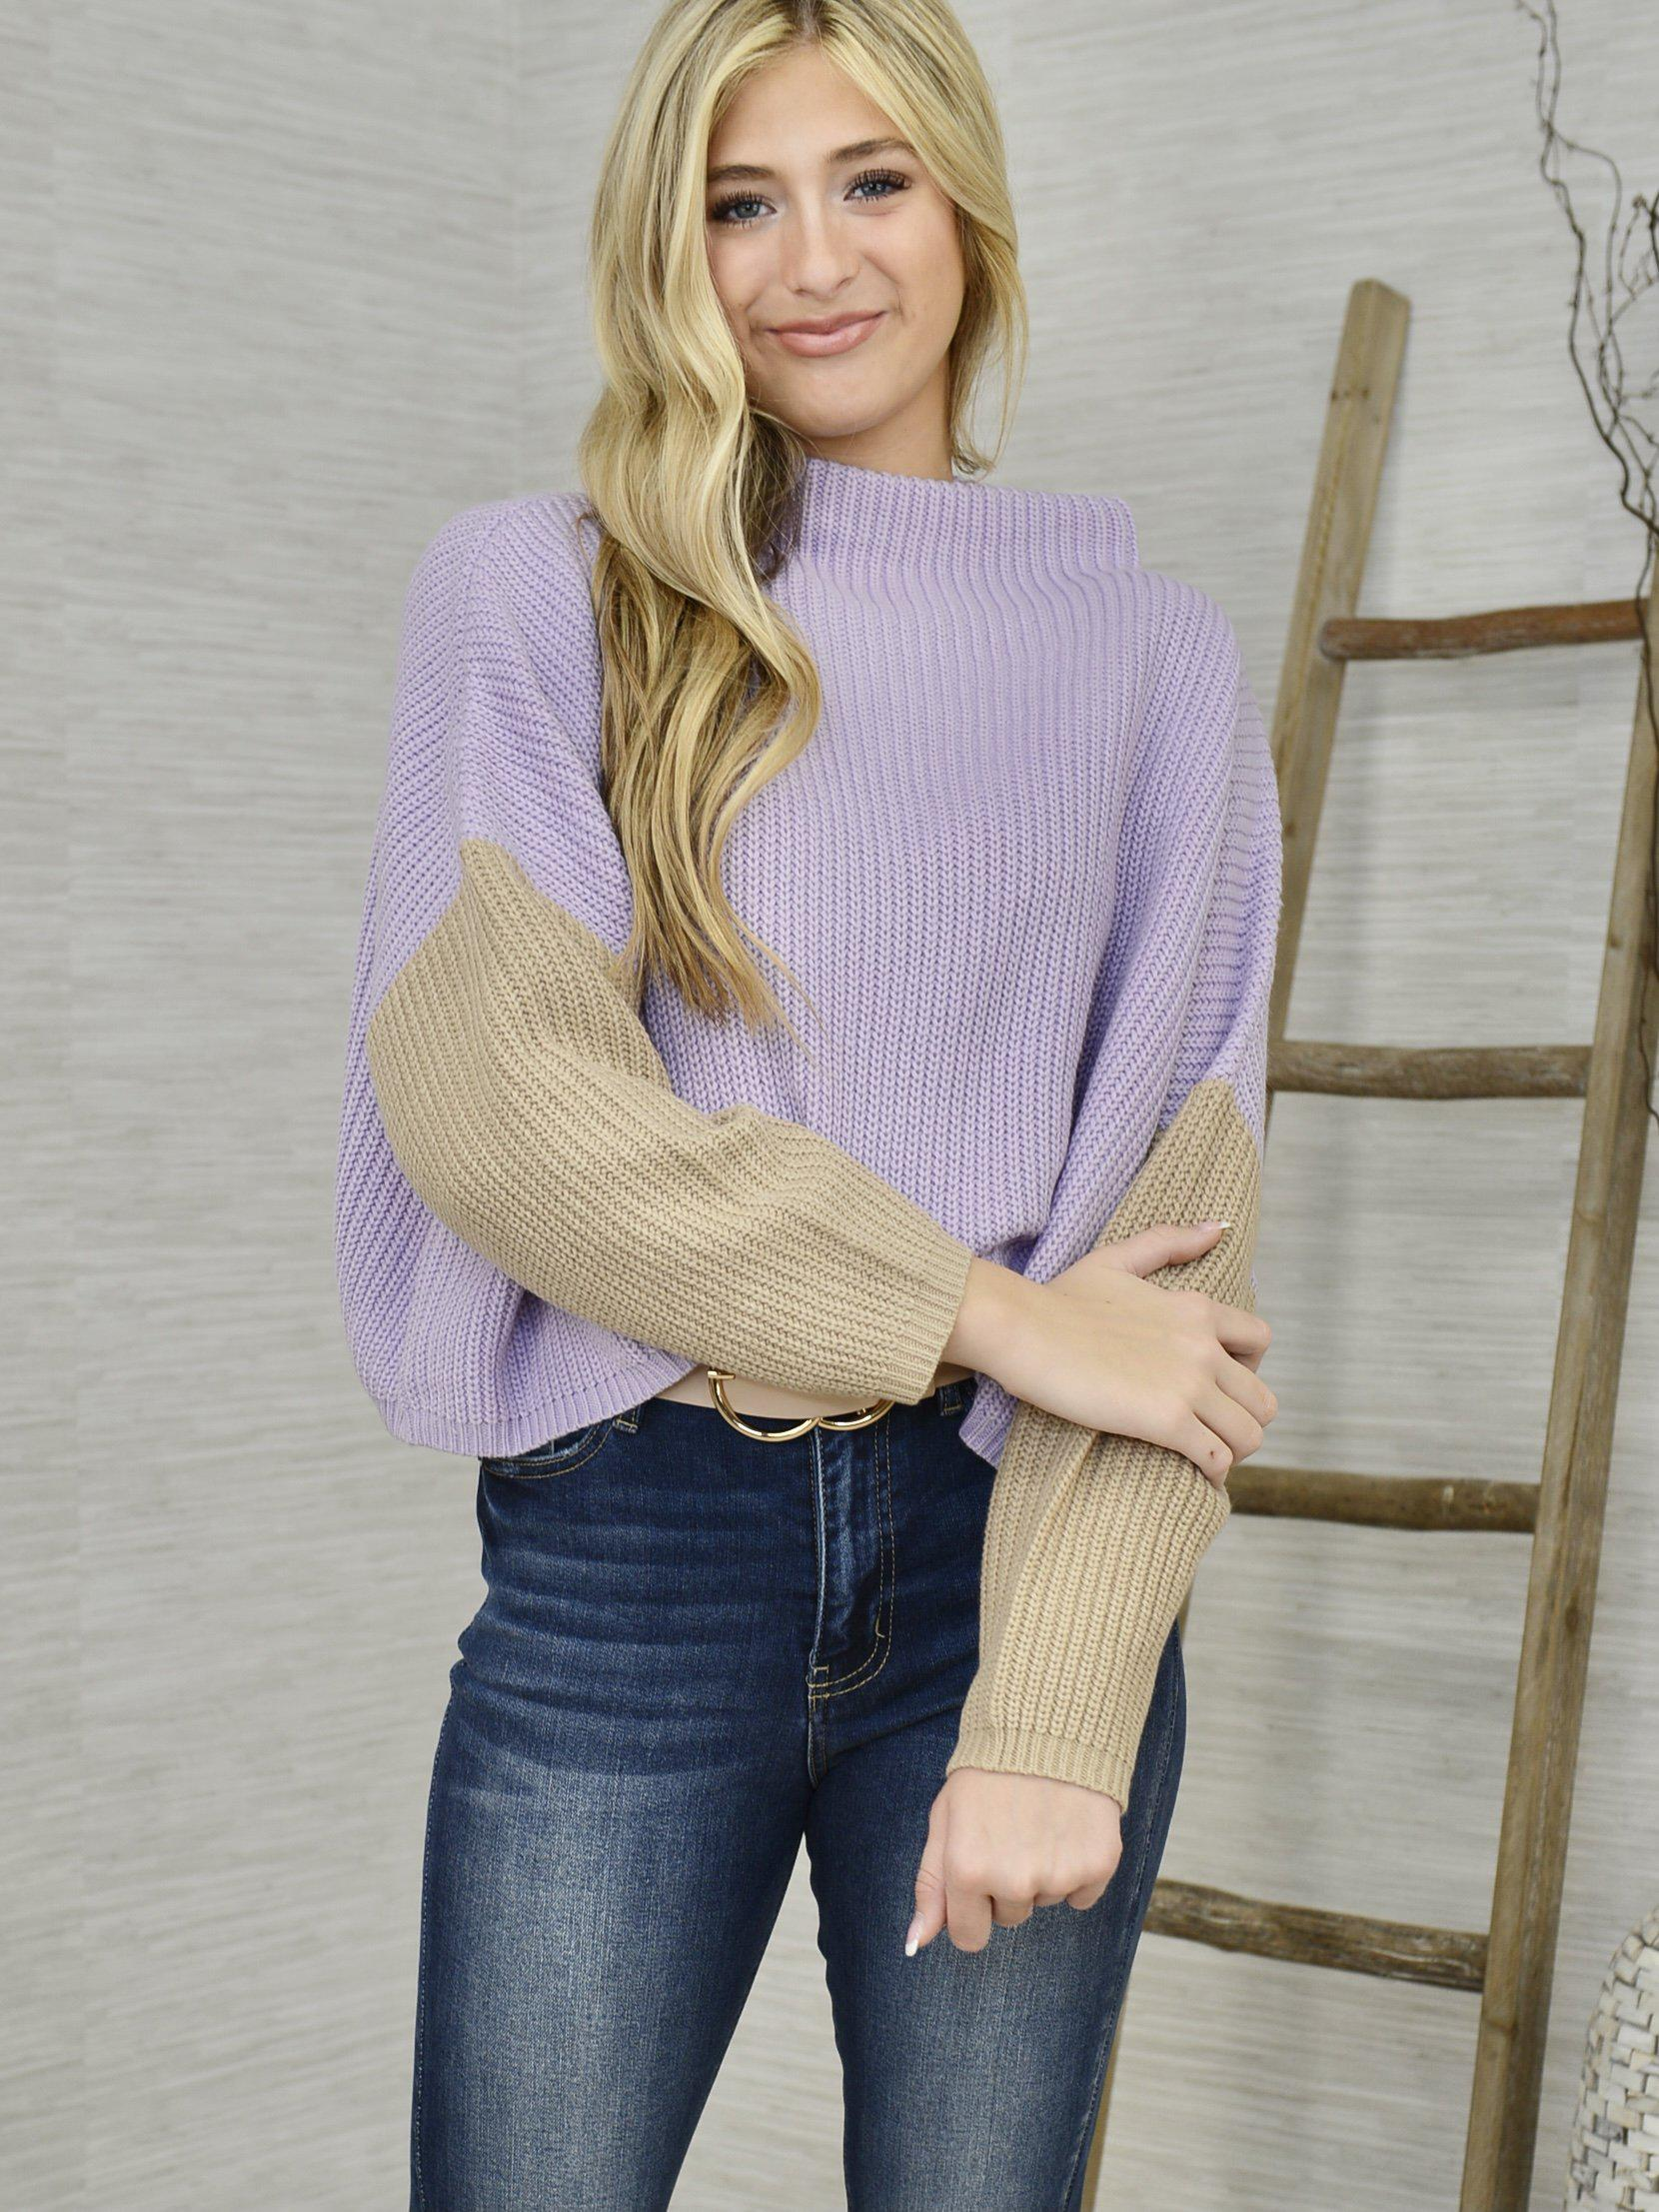 Northern Lights Sweater-Women's -New Arrivals-Runway Seven